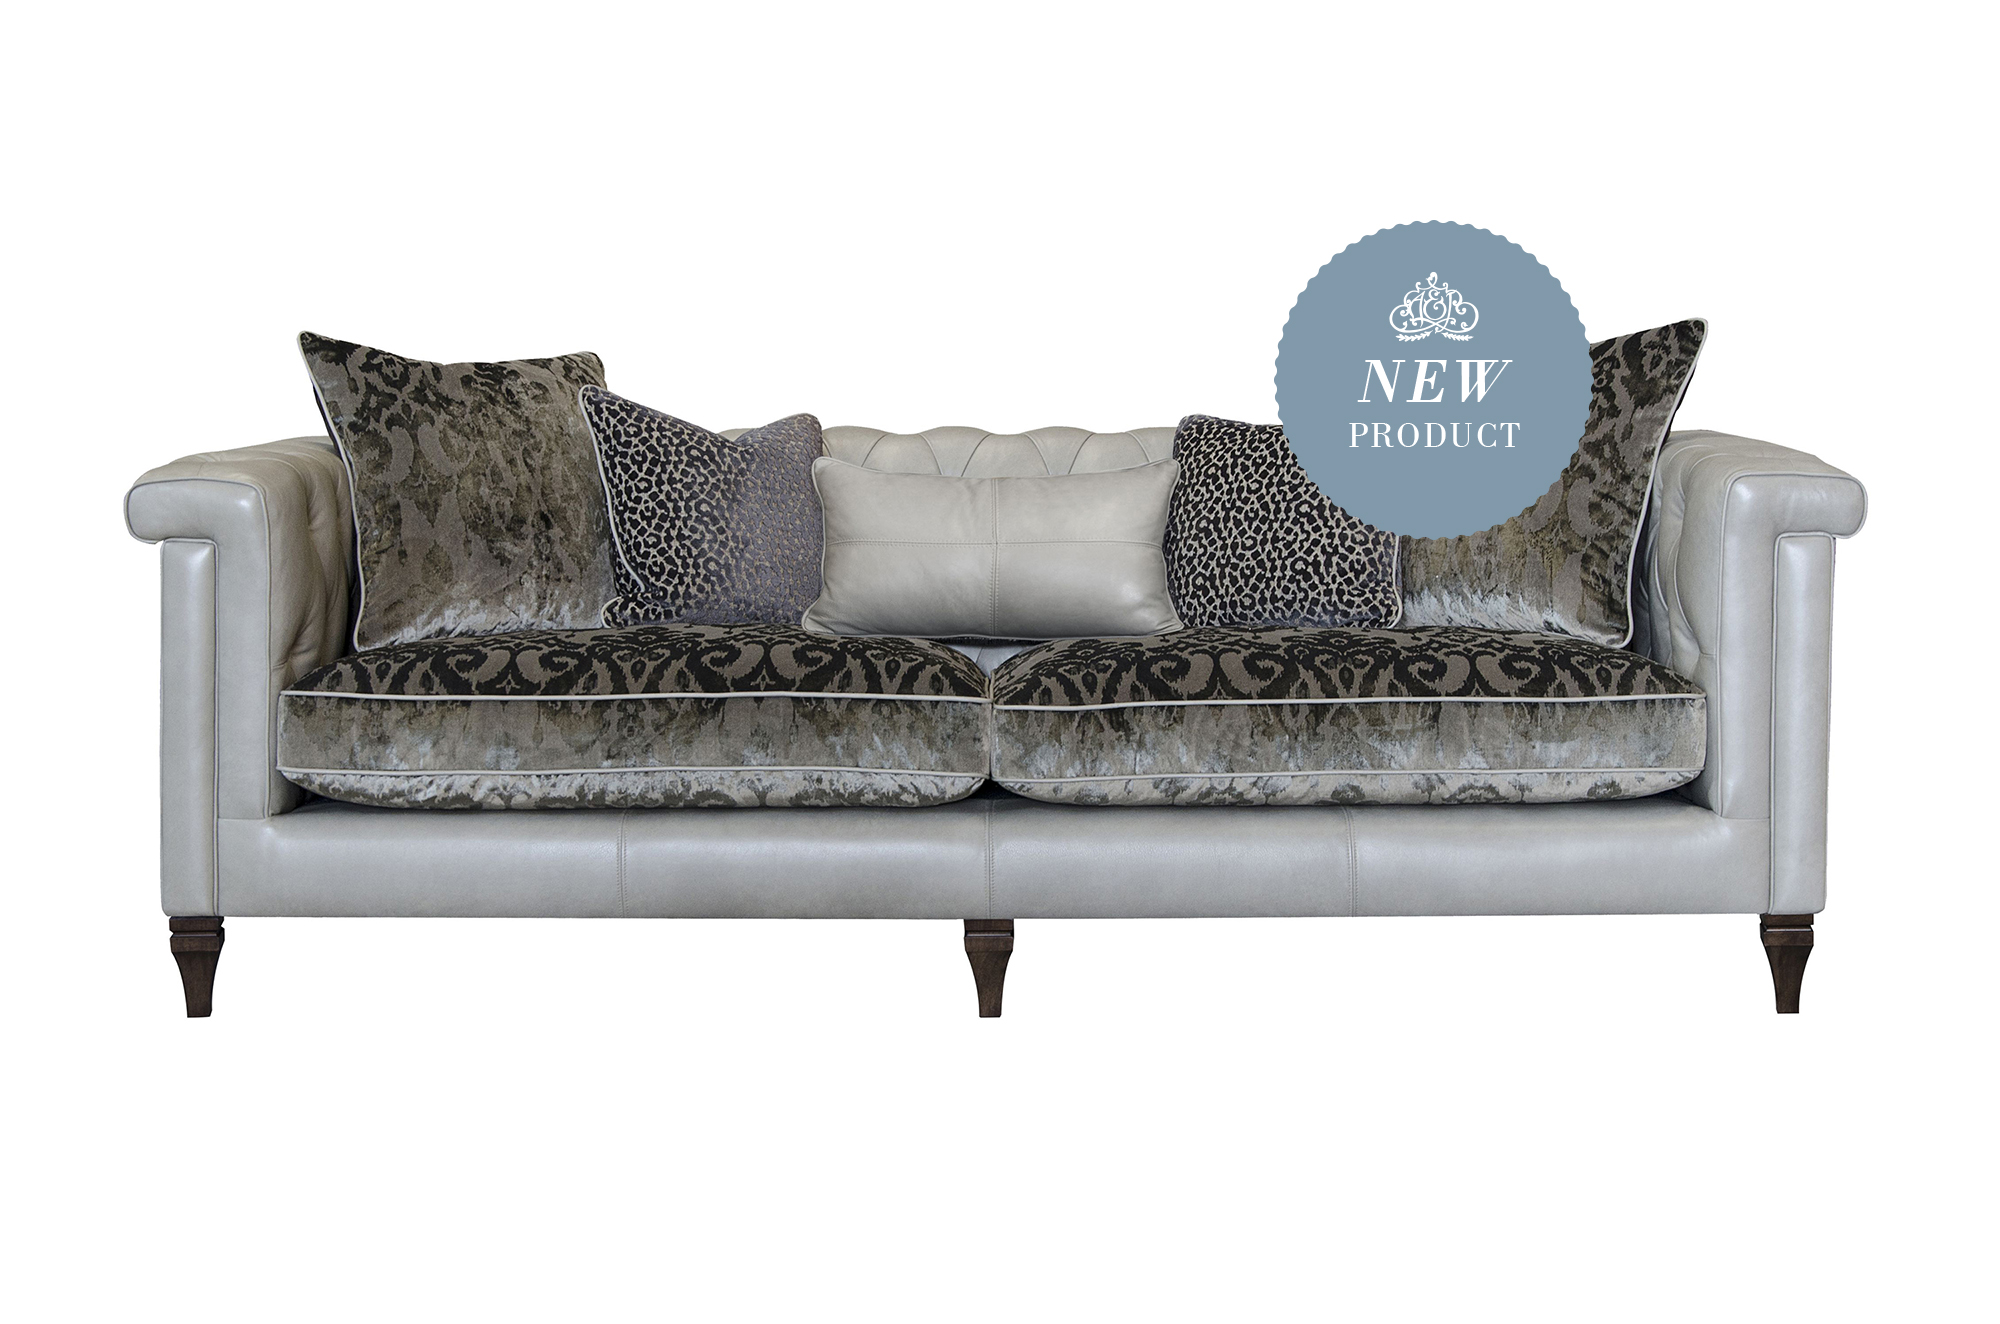 Isabel Maxi Sofa Shown in Tote Storm Leather with Fabric Option 1